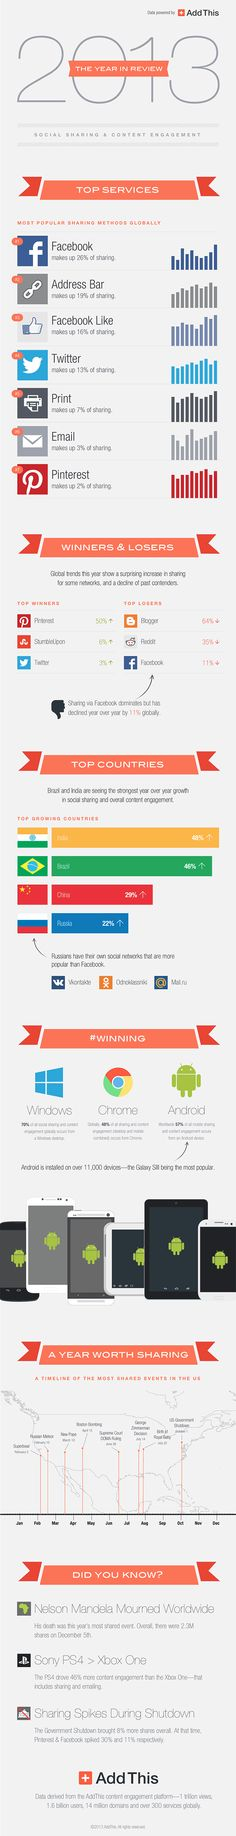 2013_infographic_RD1_2_640